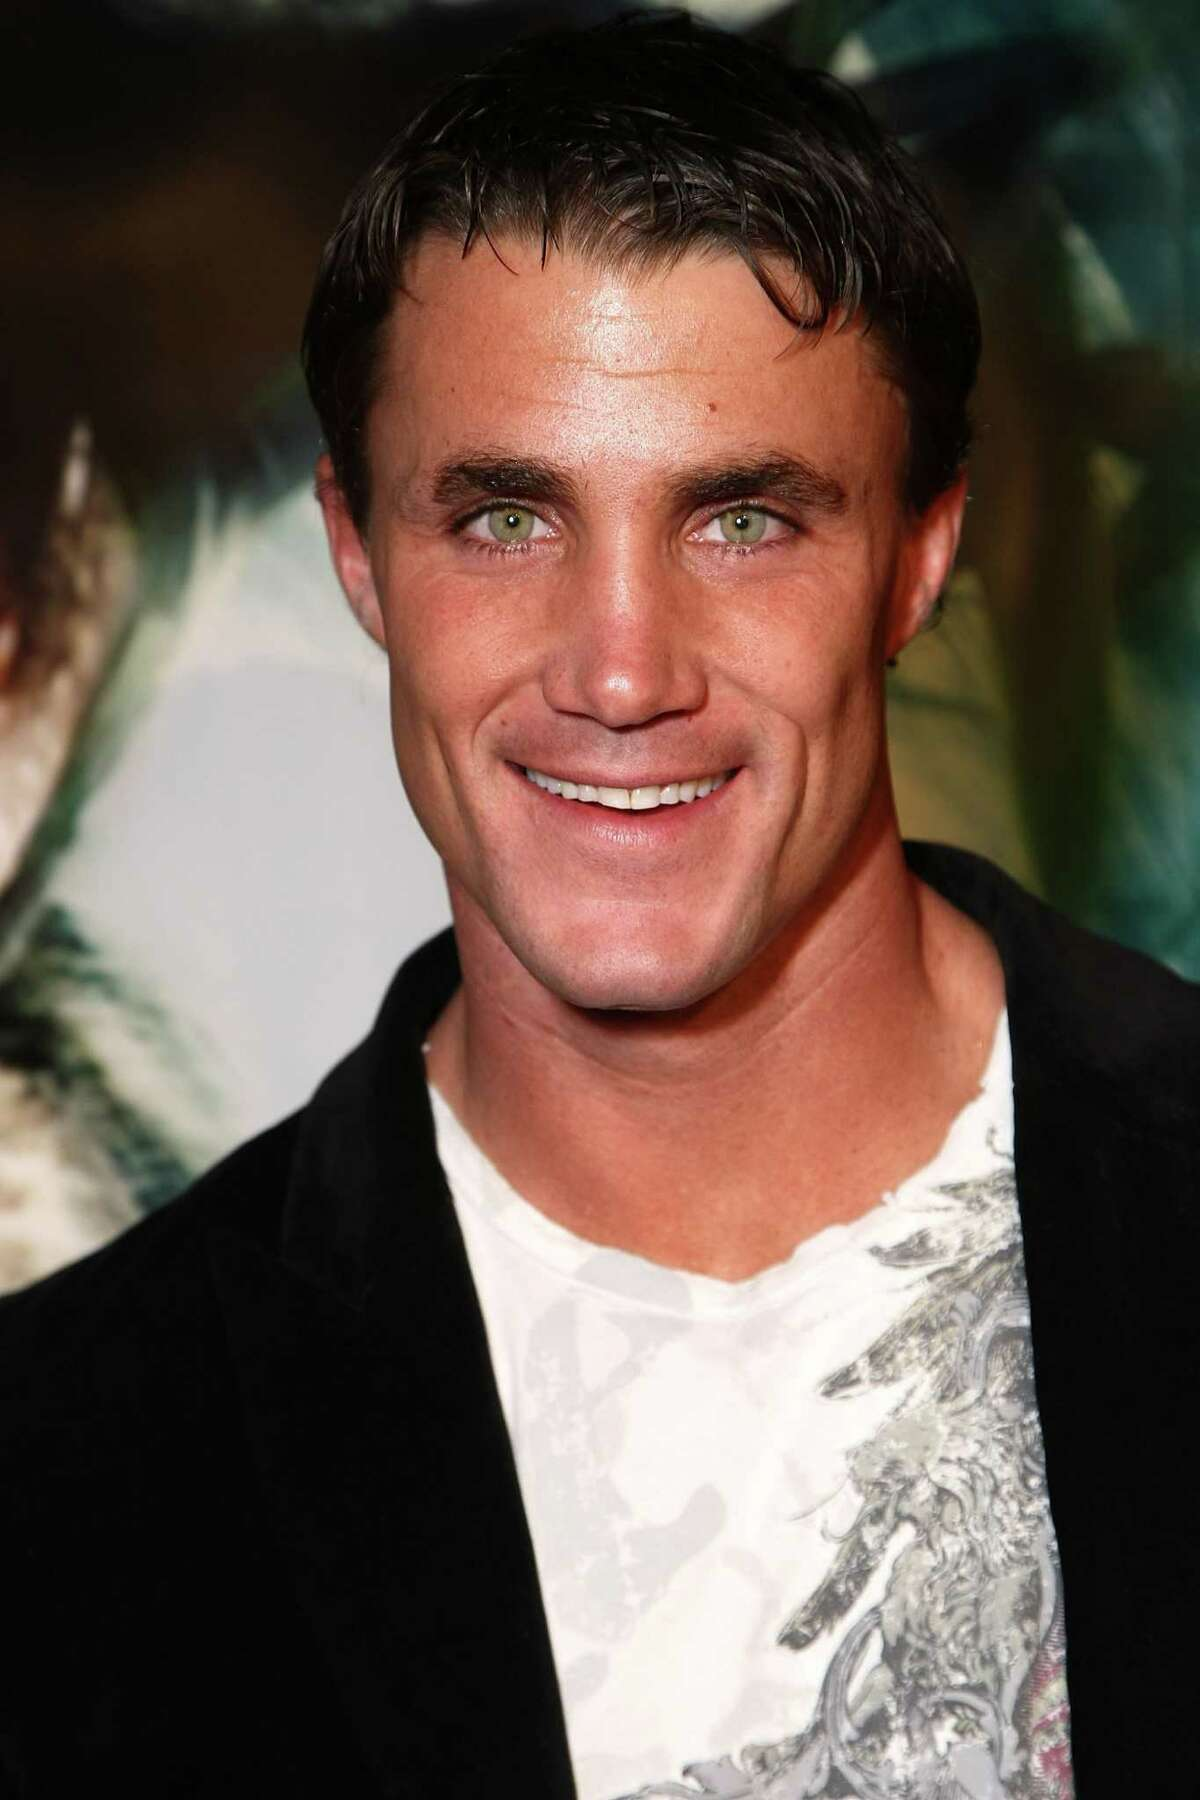 Actor, reality TV personality and fitness trainer Greg Plitt died after being struck by a commuter train Saturday in Burbank. He was 37 years old.